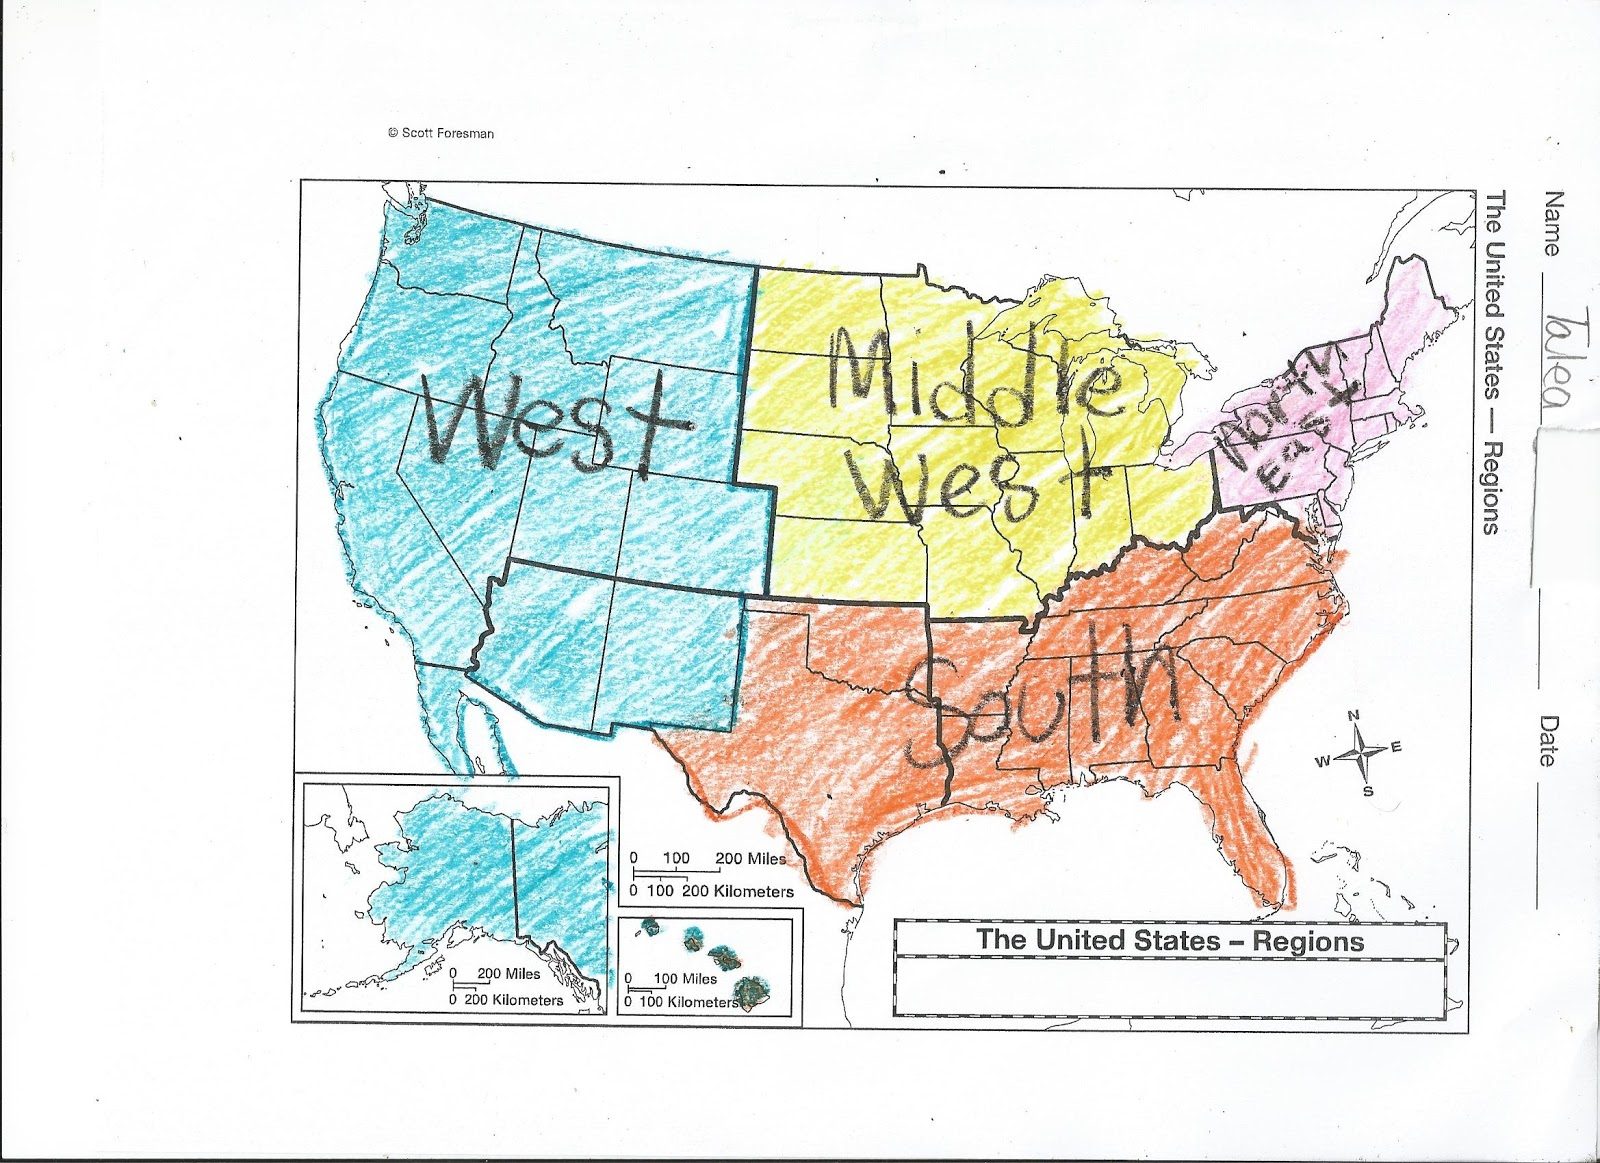 The Amazing Kids Of Room 200 The Regions Of The United States